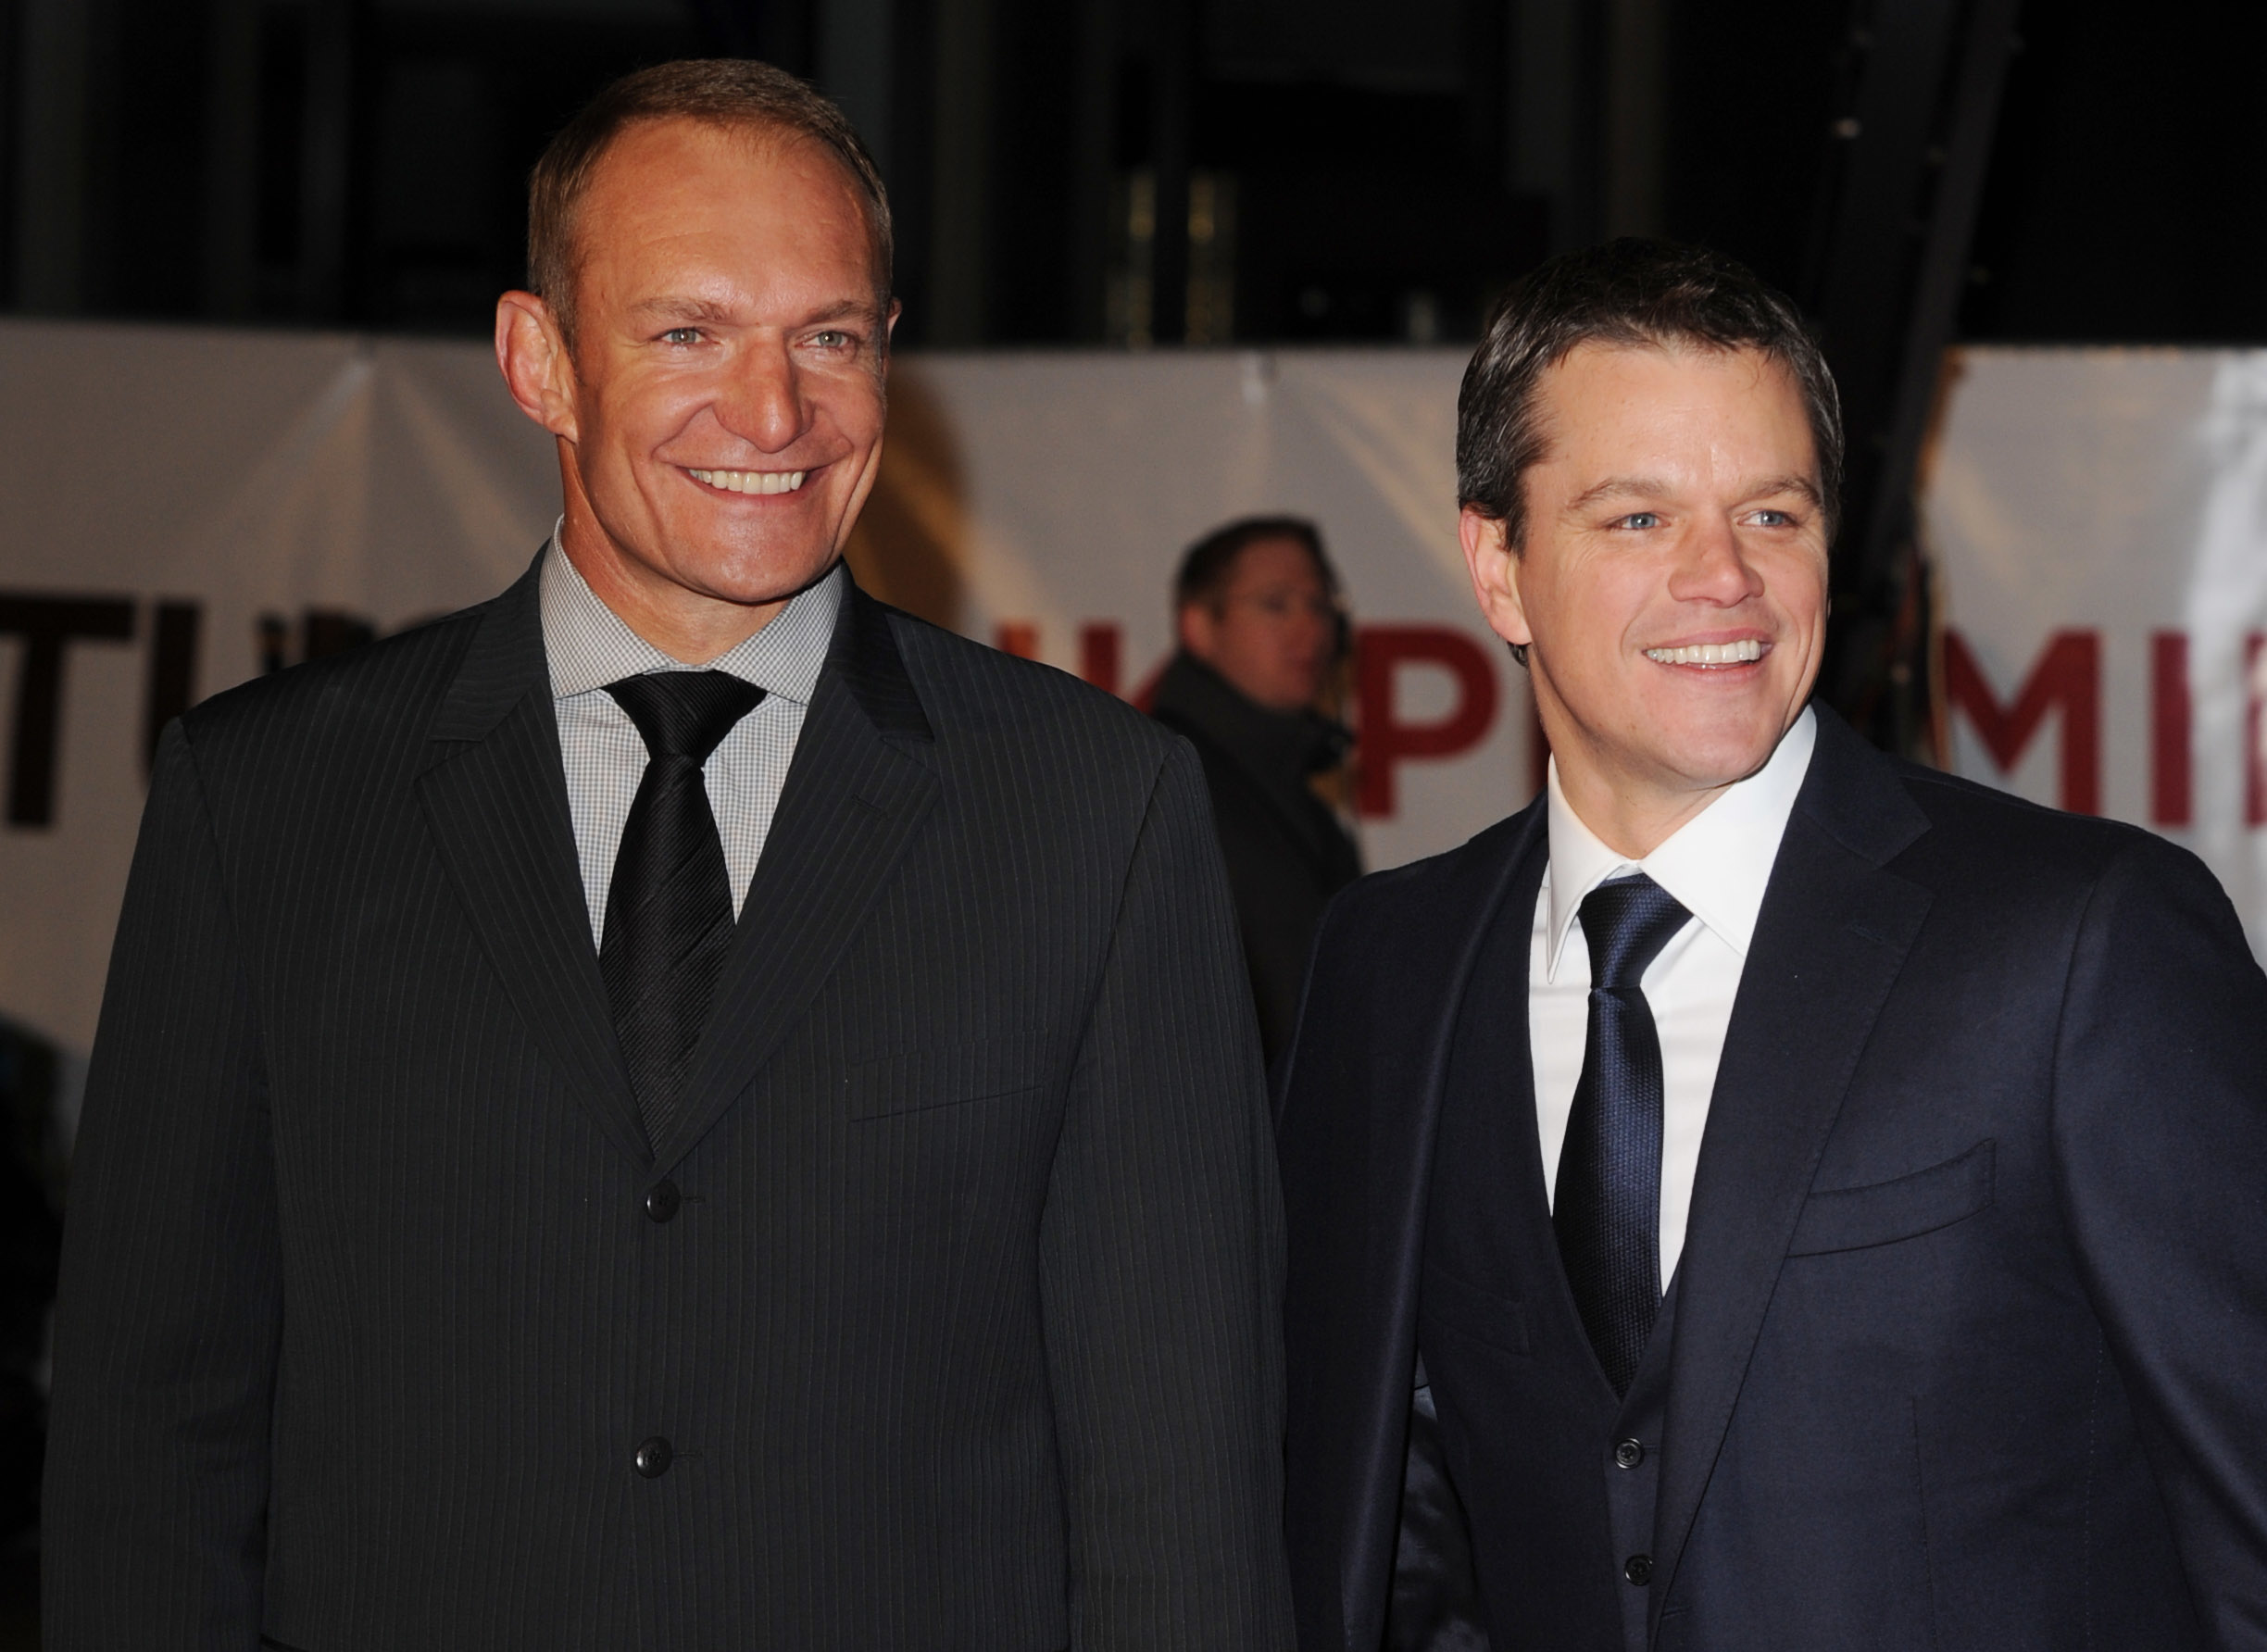 Matt Damon talks about learning rugby for Invictus - Rugby World